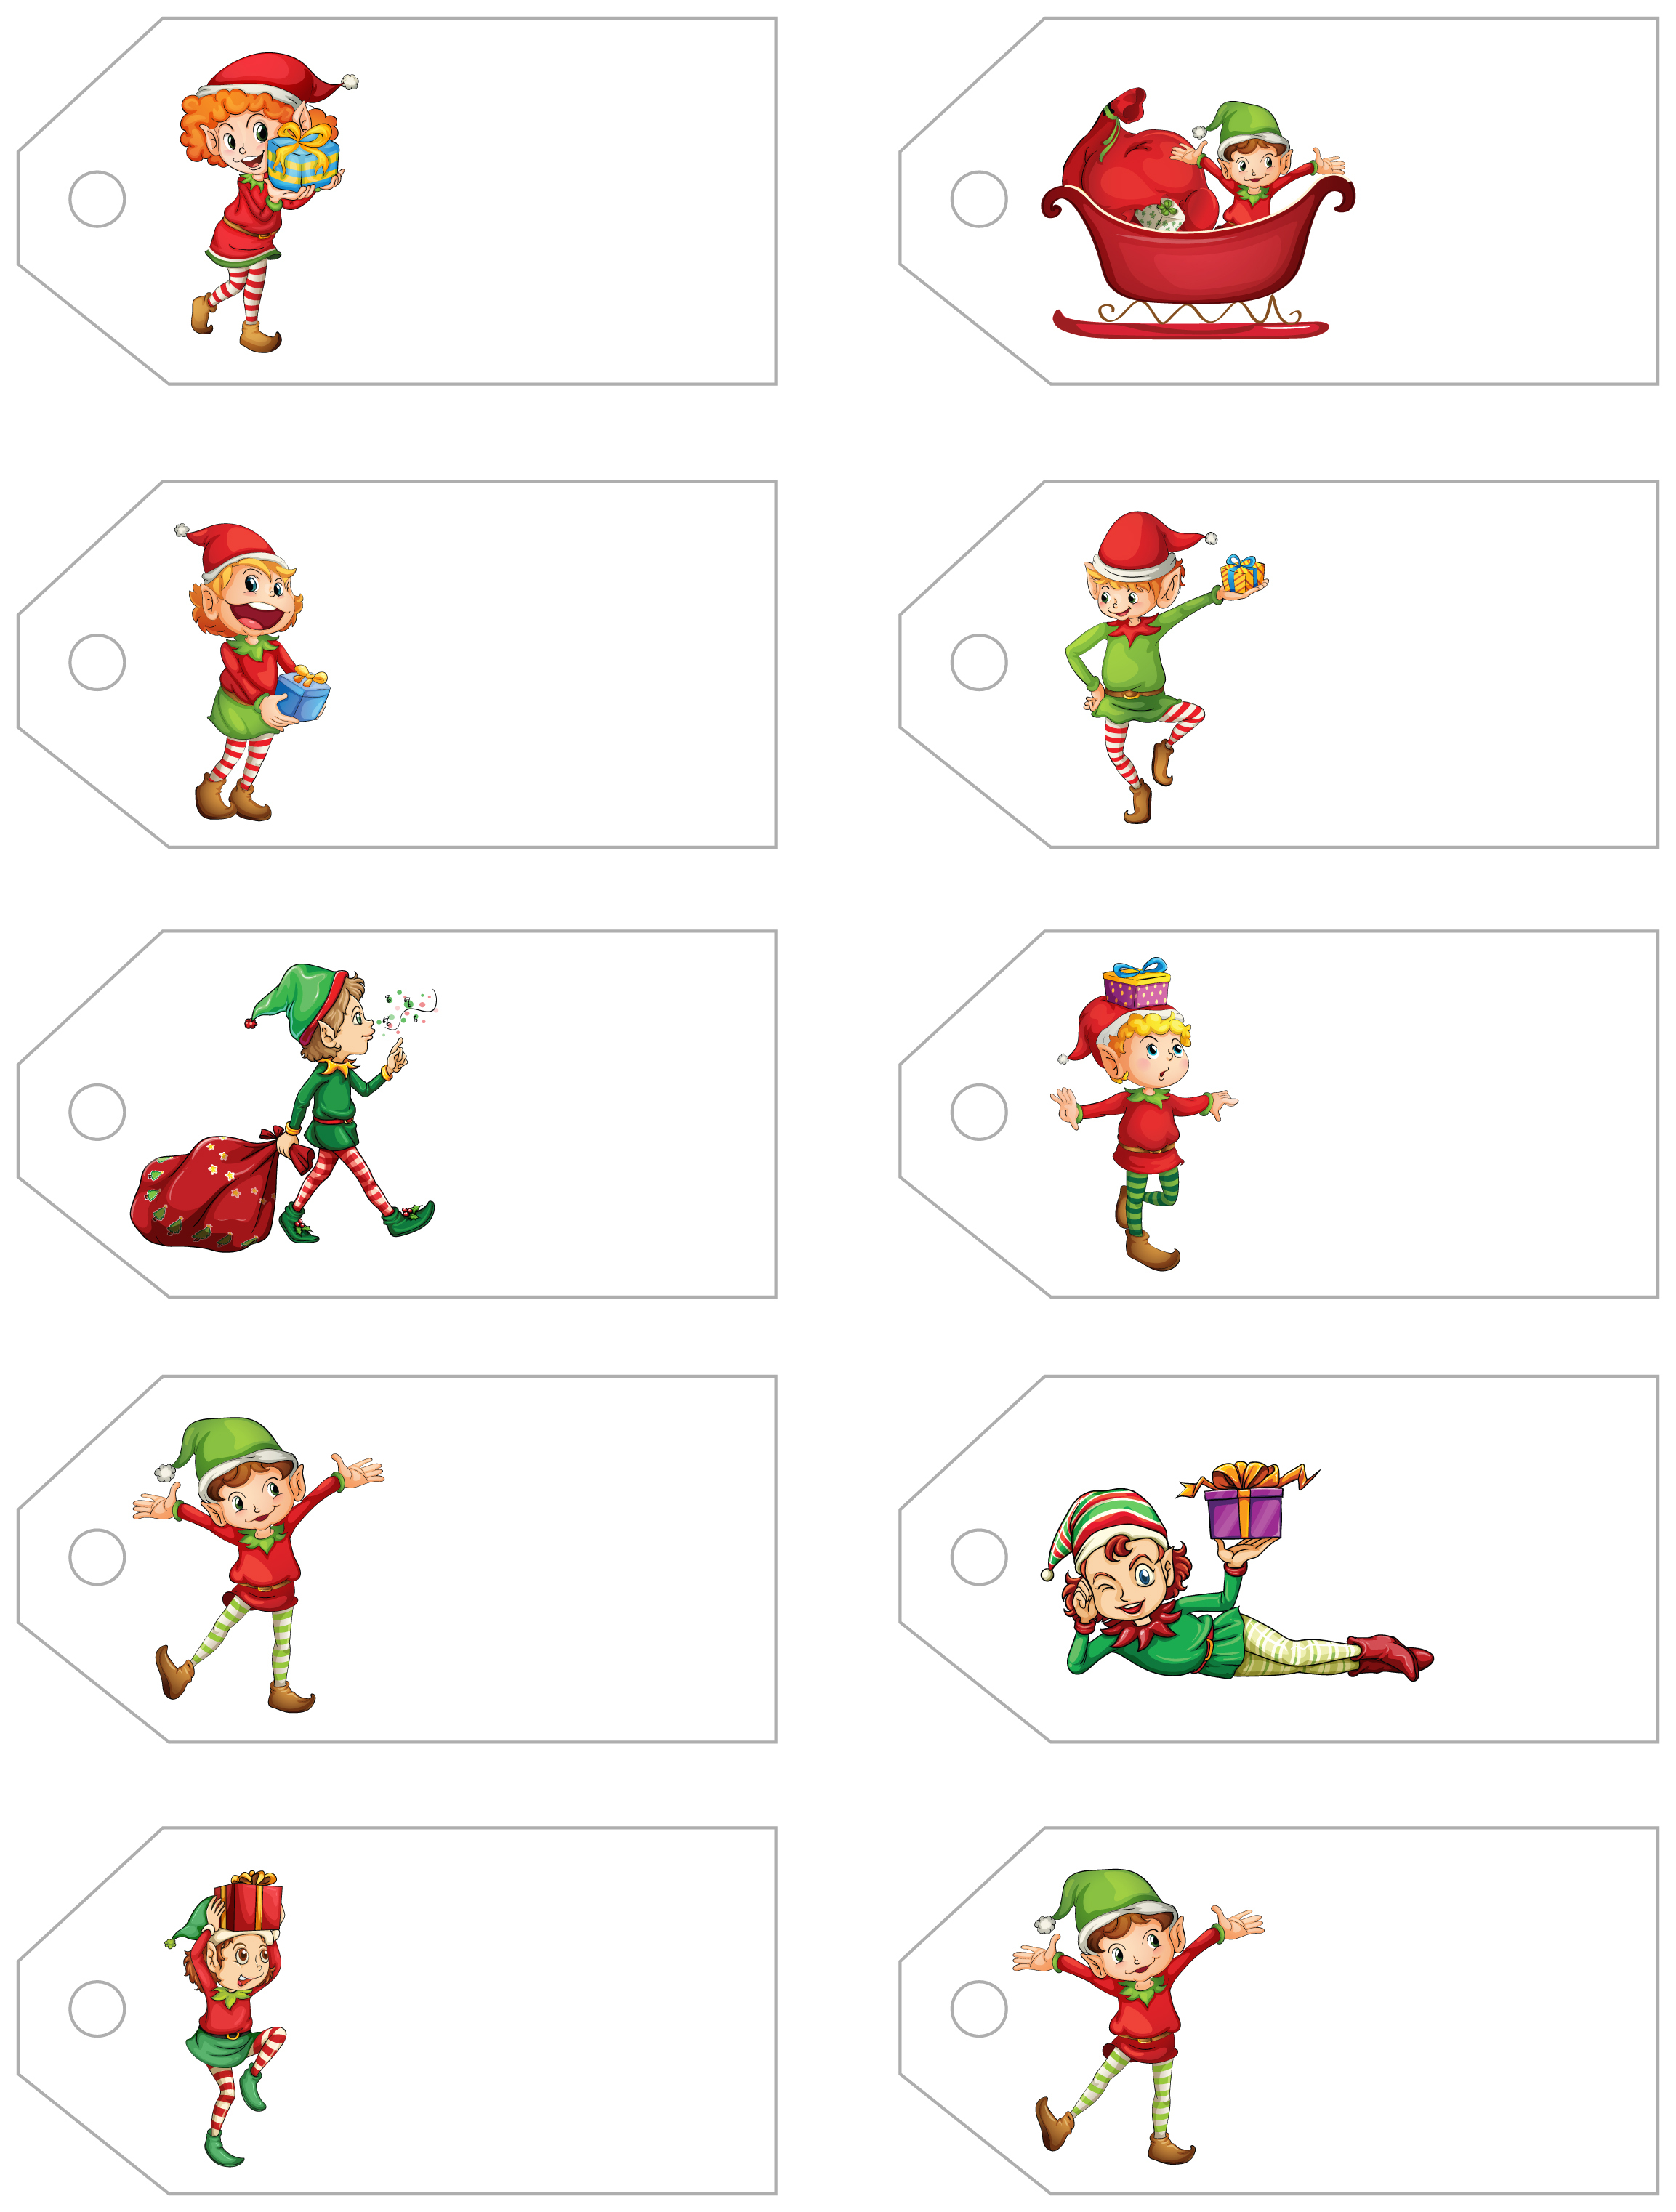 Santa's Little Gift To You! Free Printable Gift Tags And Labels - Free Printable To From Gift Tags